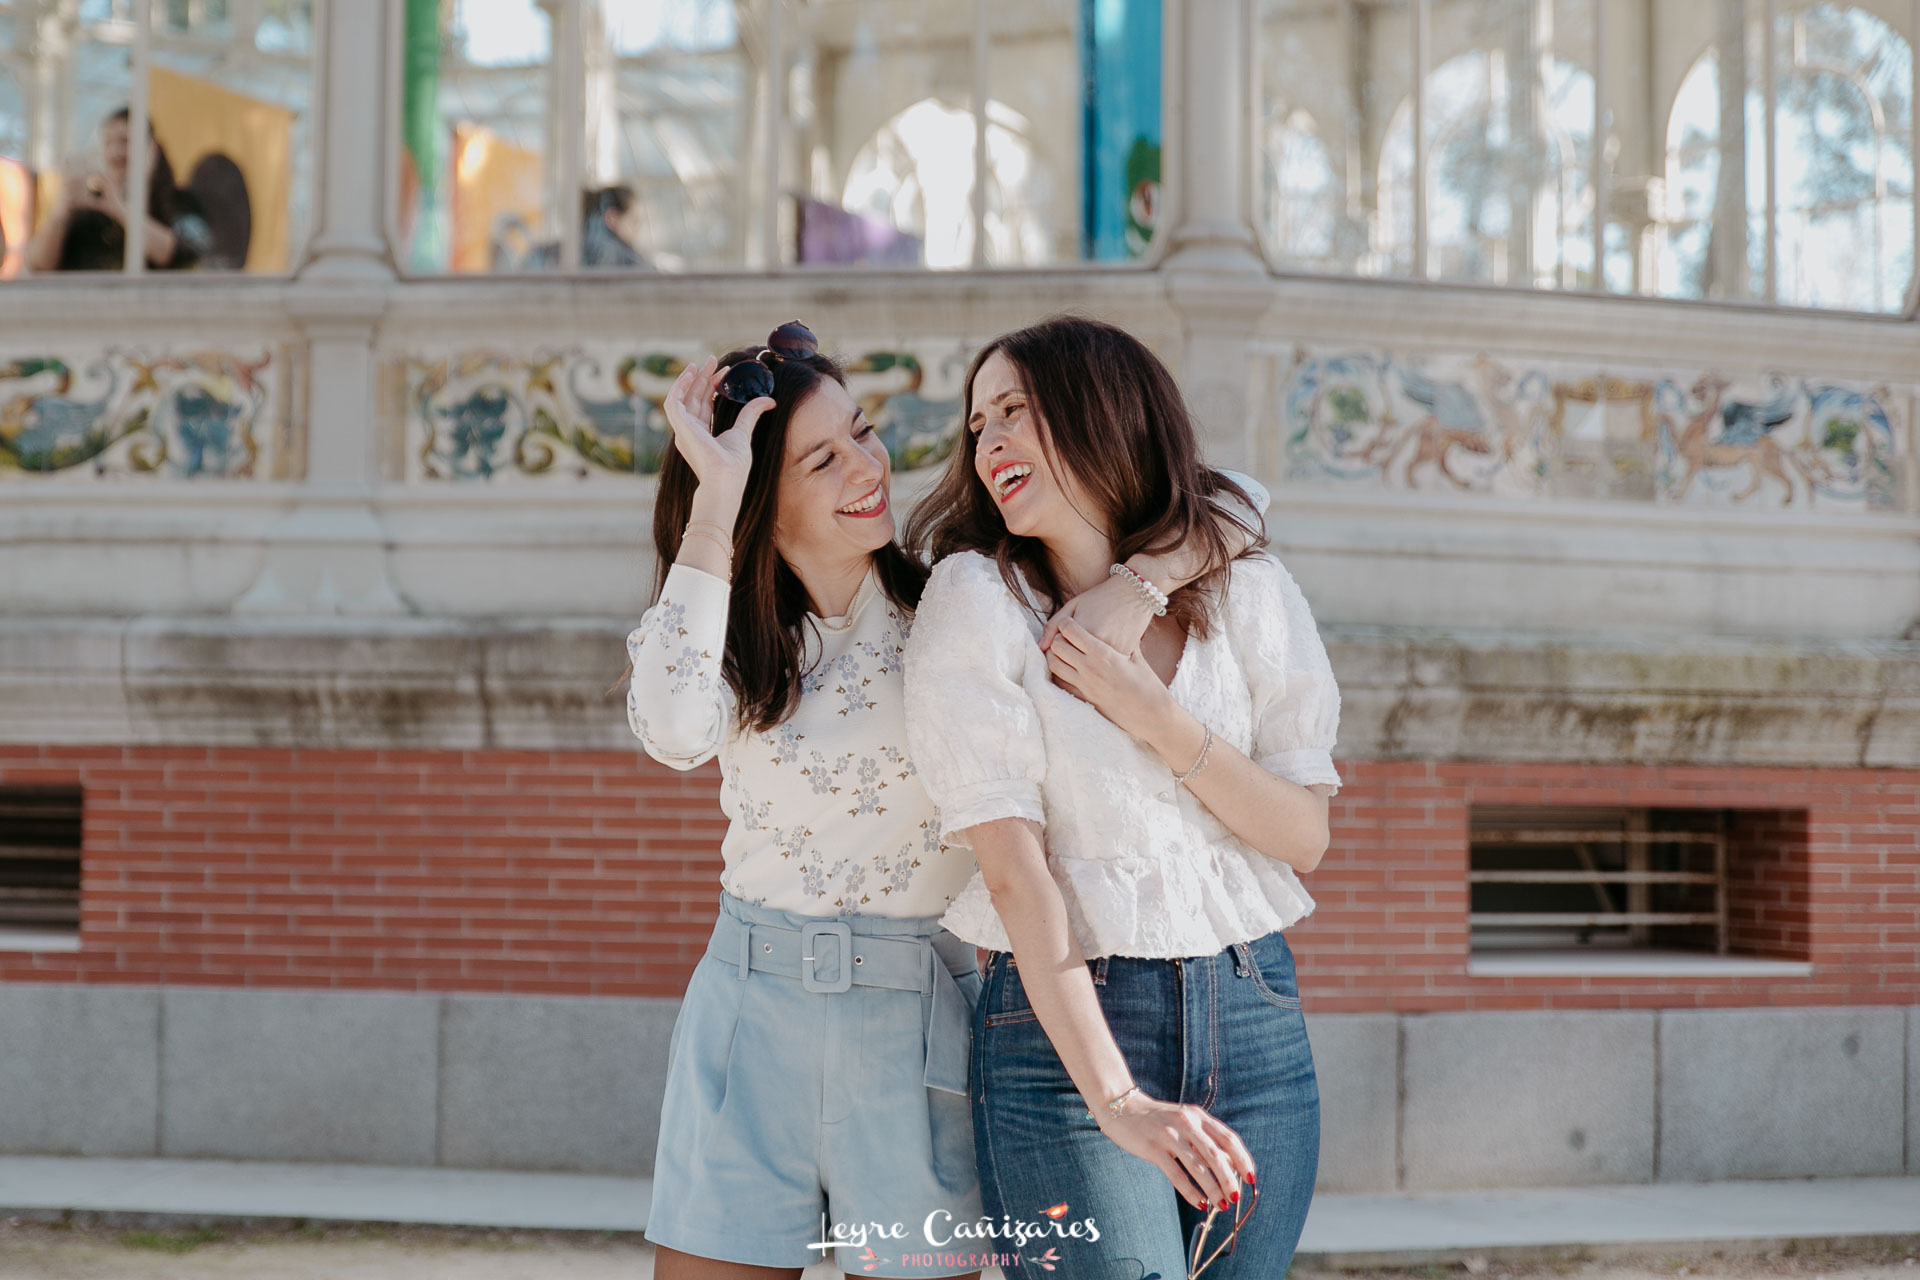 friends photoshoot in nyc